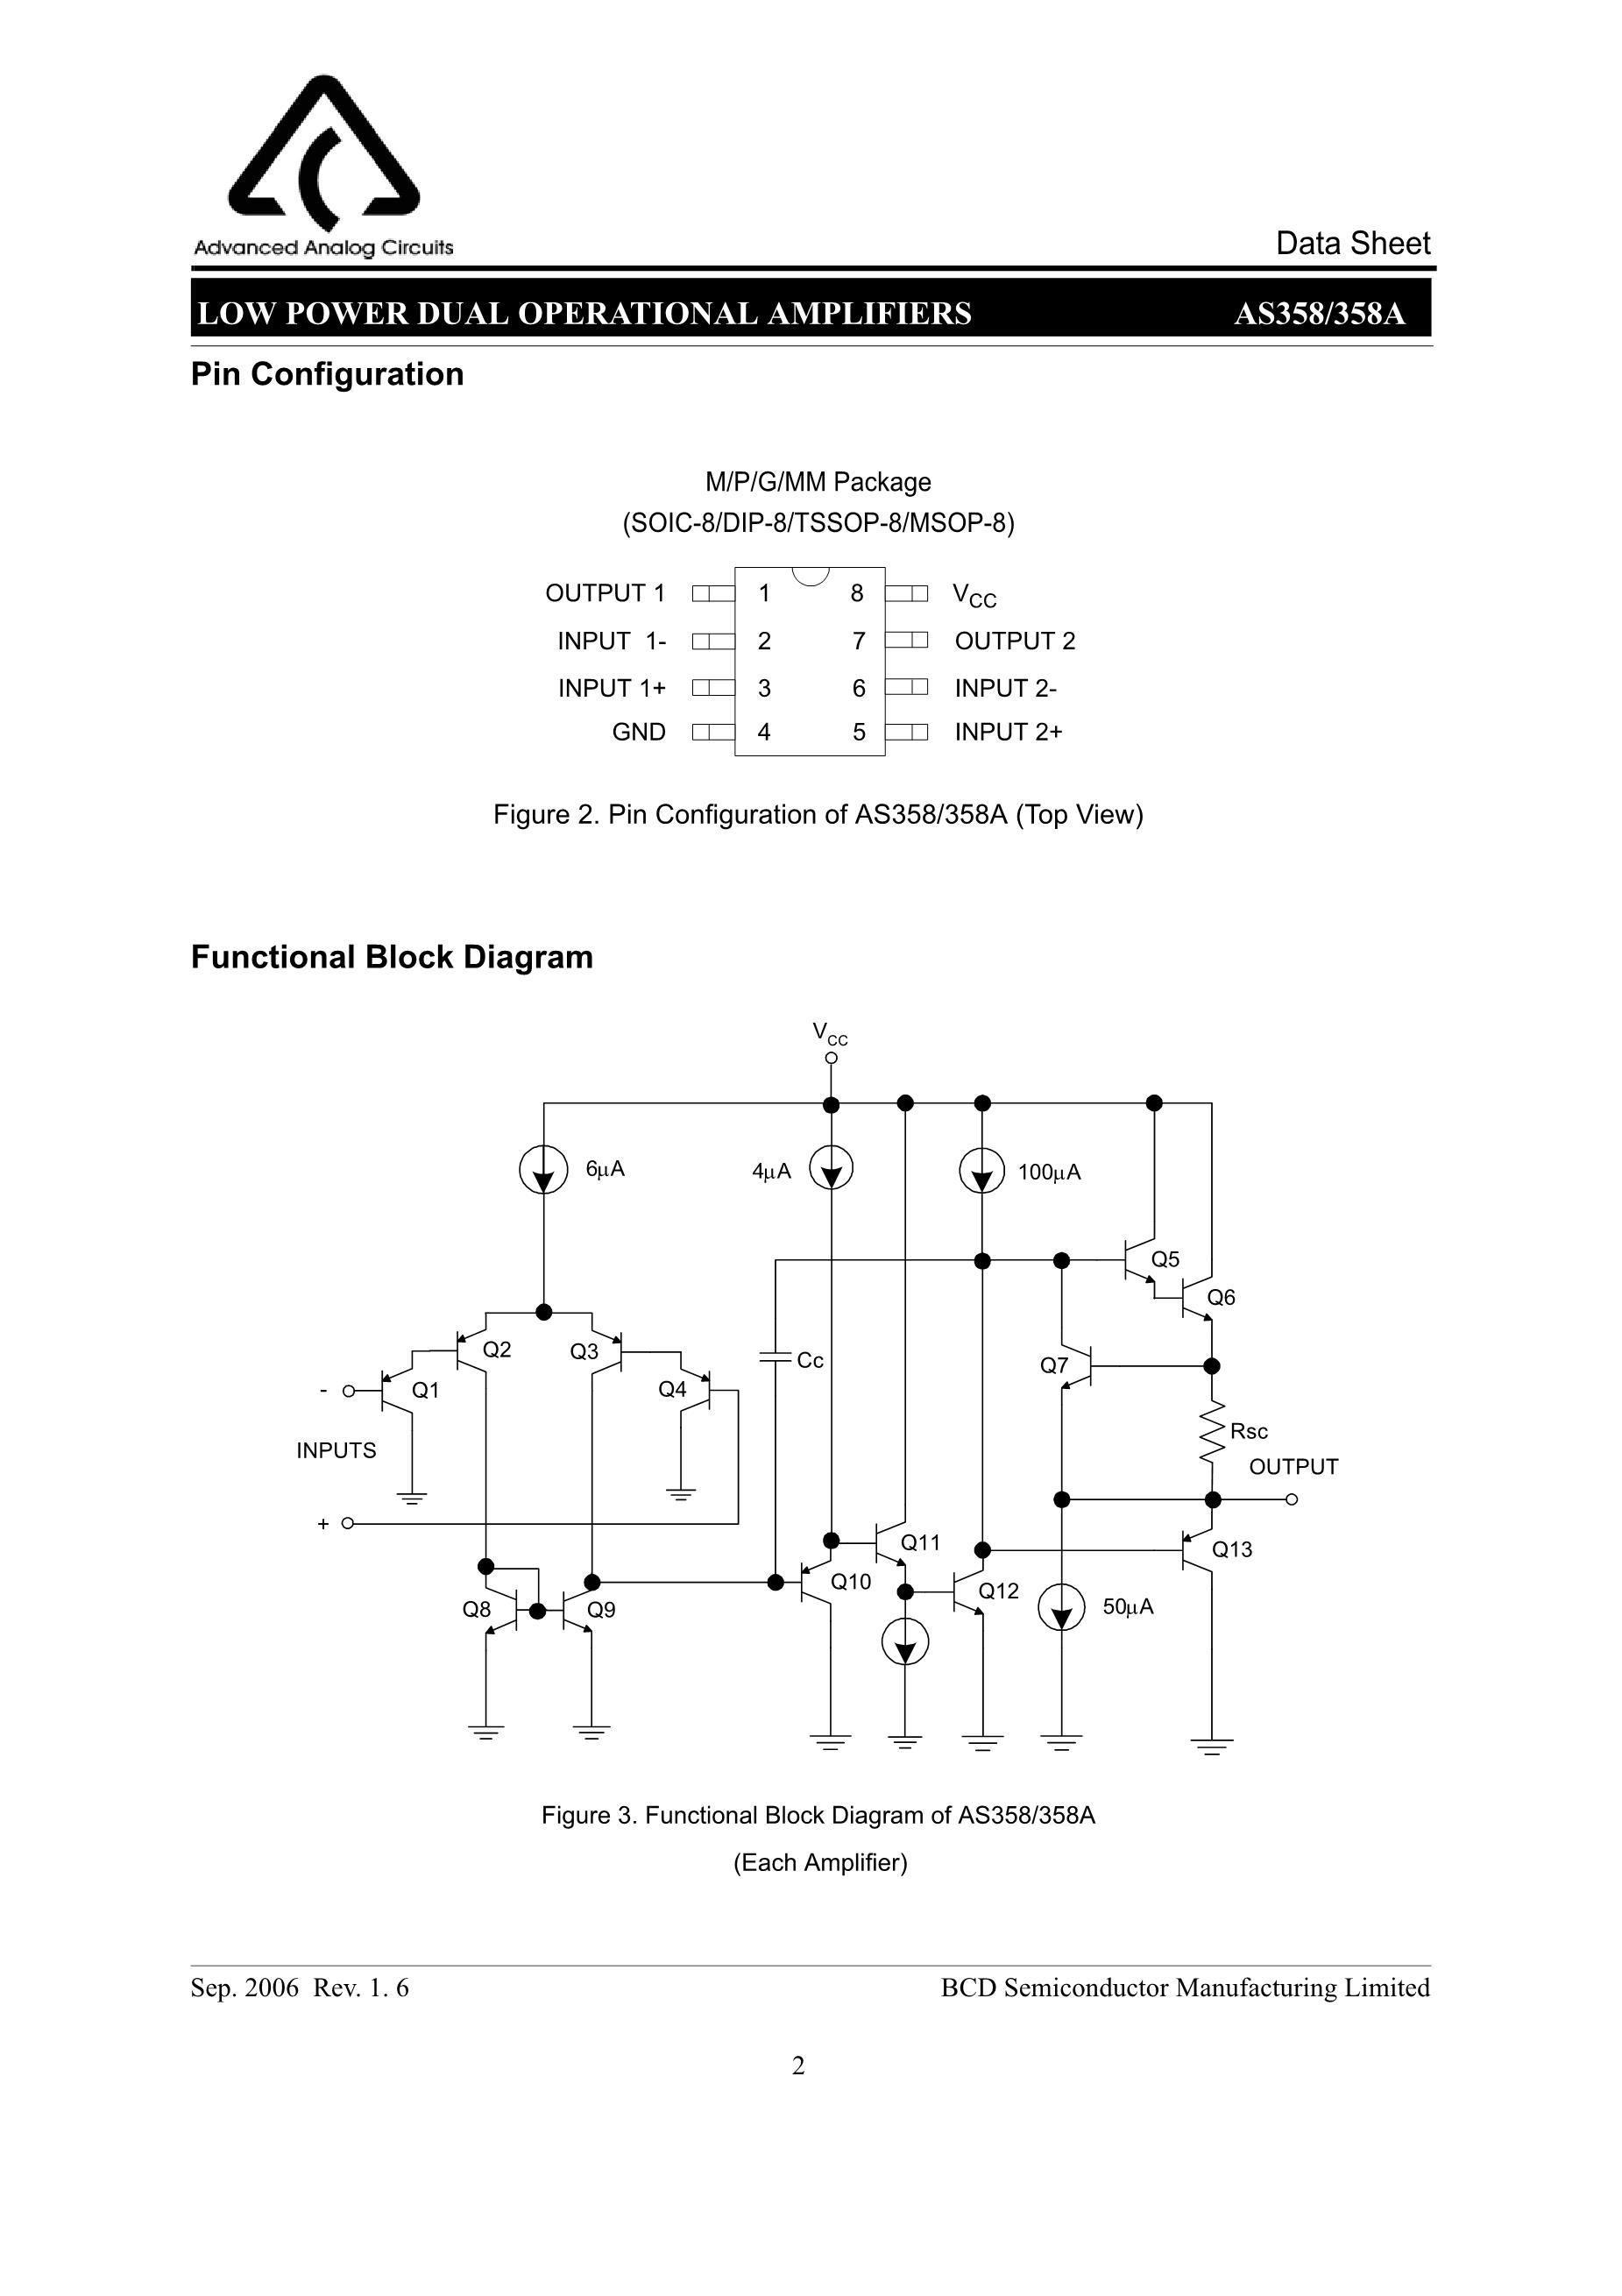 AS3527A FCT T's pdf picture 2